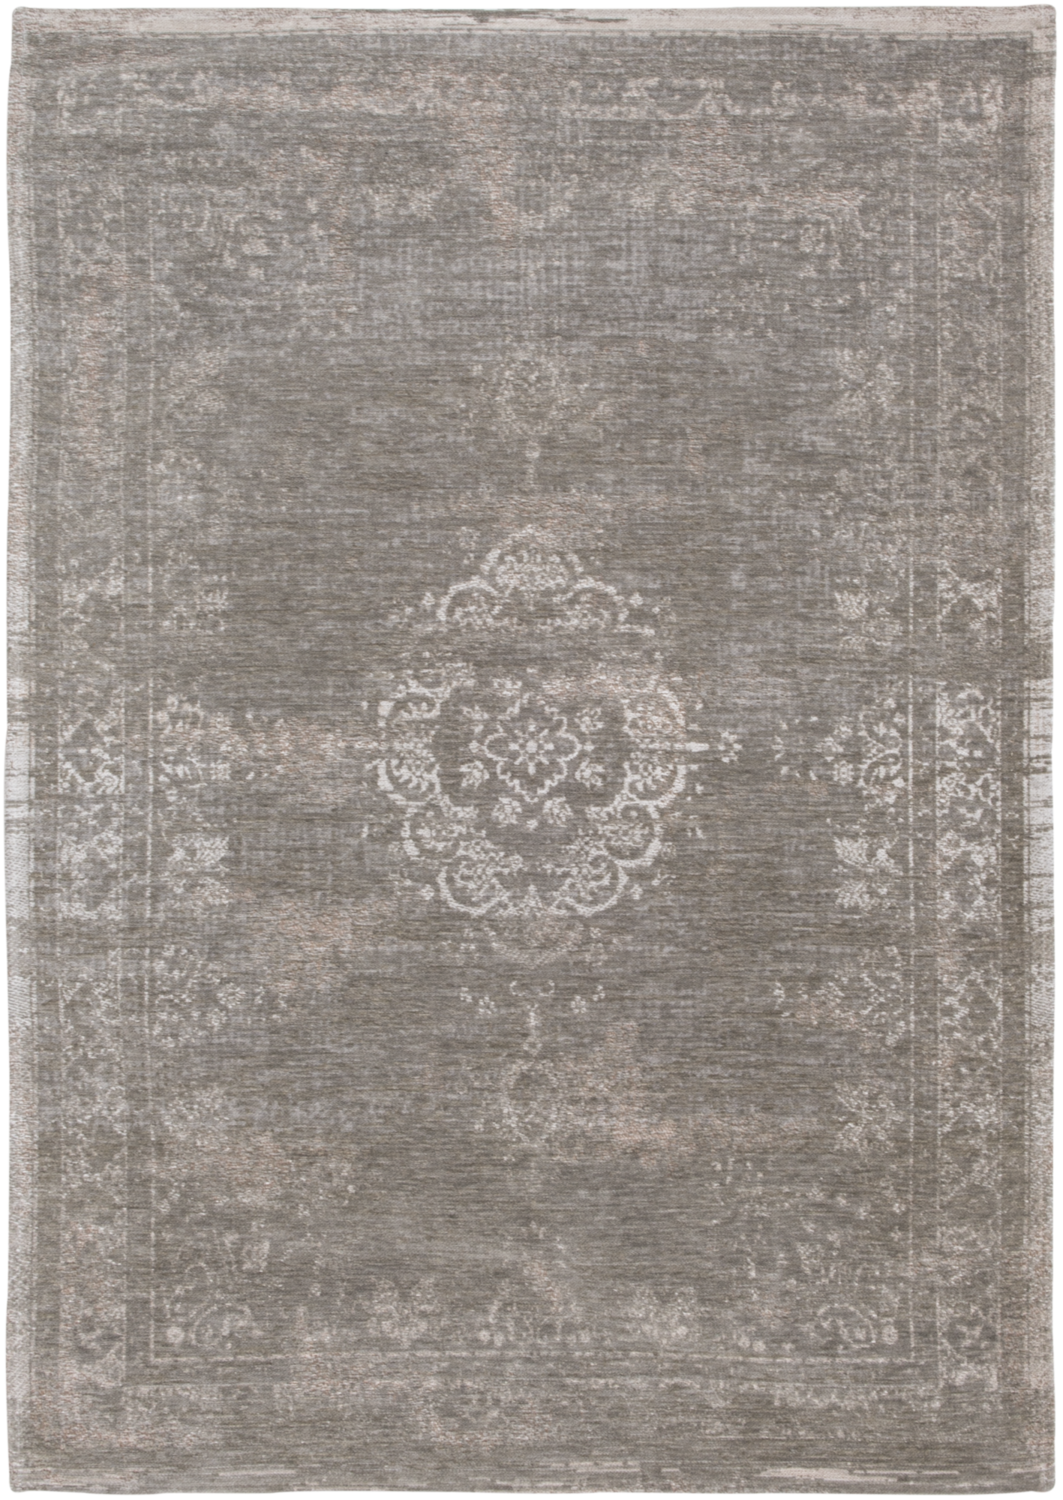 louis de poortere fading world 8382 white pepper rug best prices and free delivery at buyarug. Black Bedroom Furniture Sets. Home Design Ideas